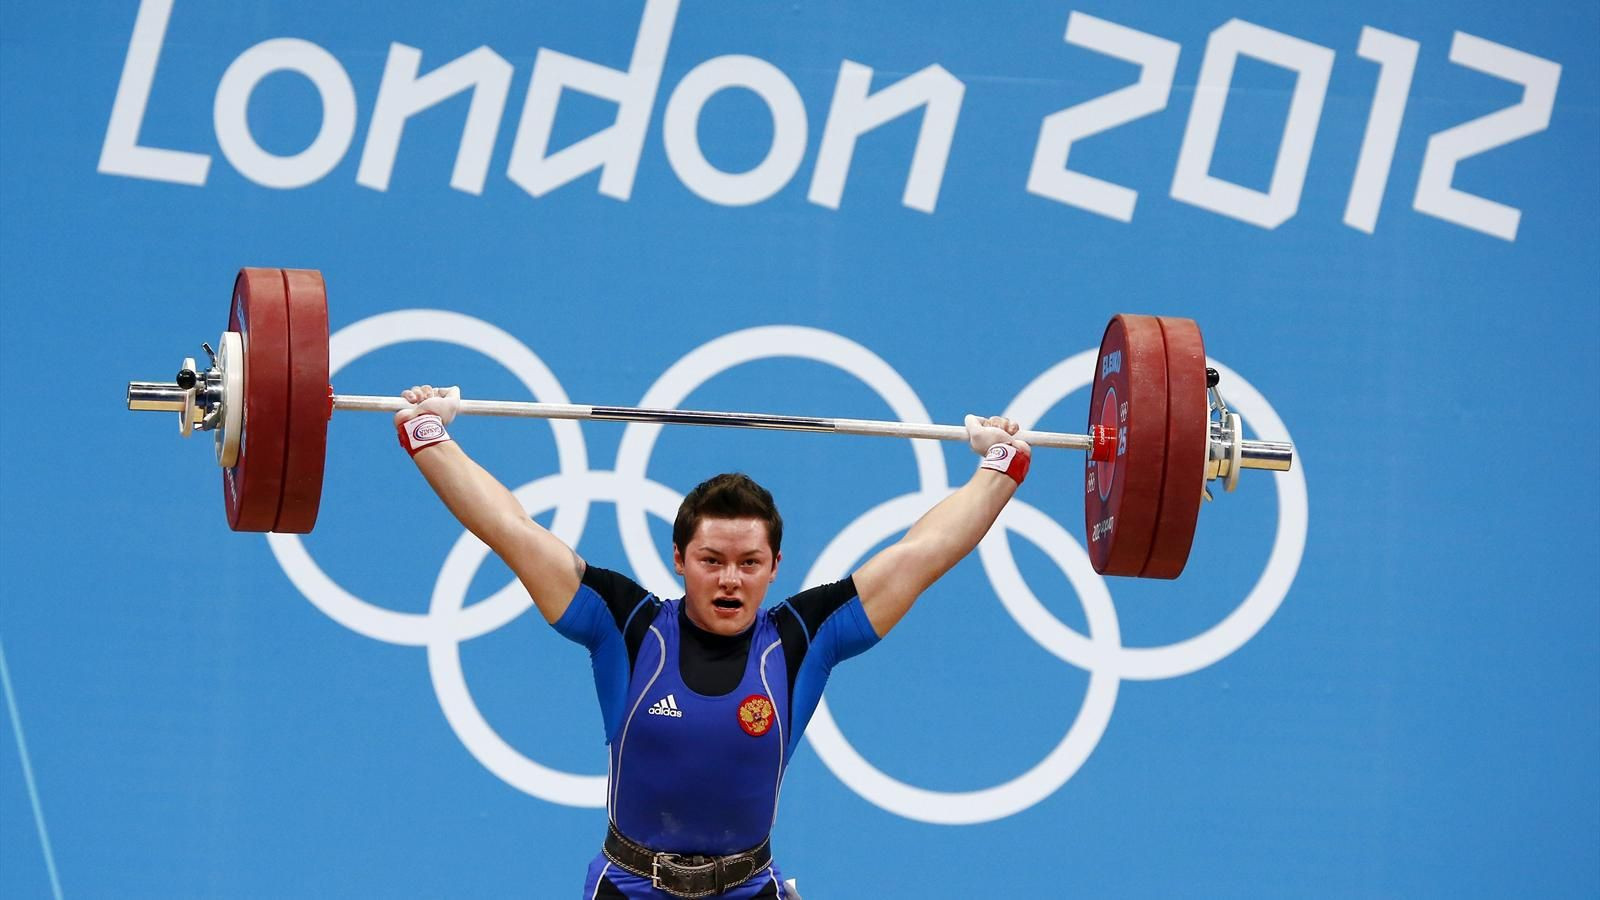 Matthew Curtain had been in charge of weightlifting and powerlifting at London 2012 ©Getty Images